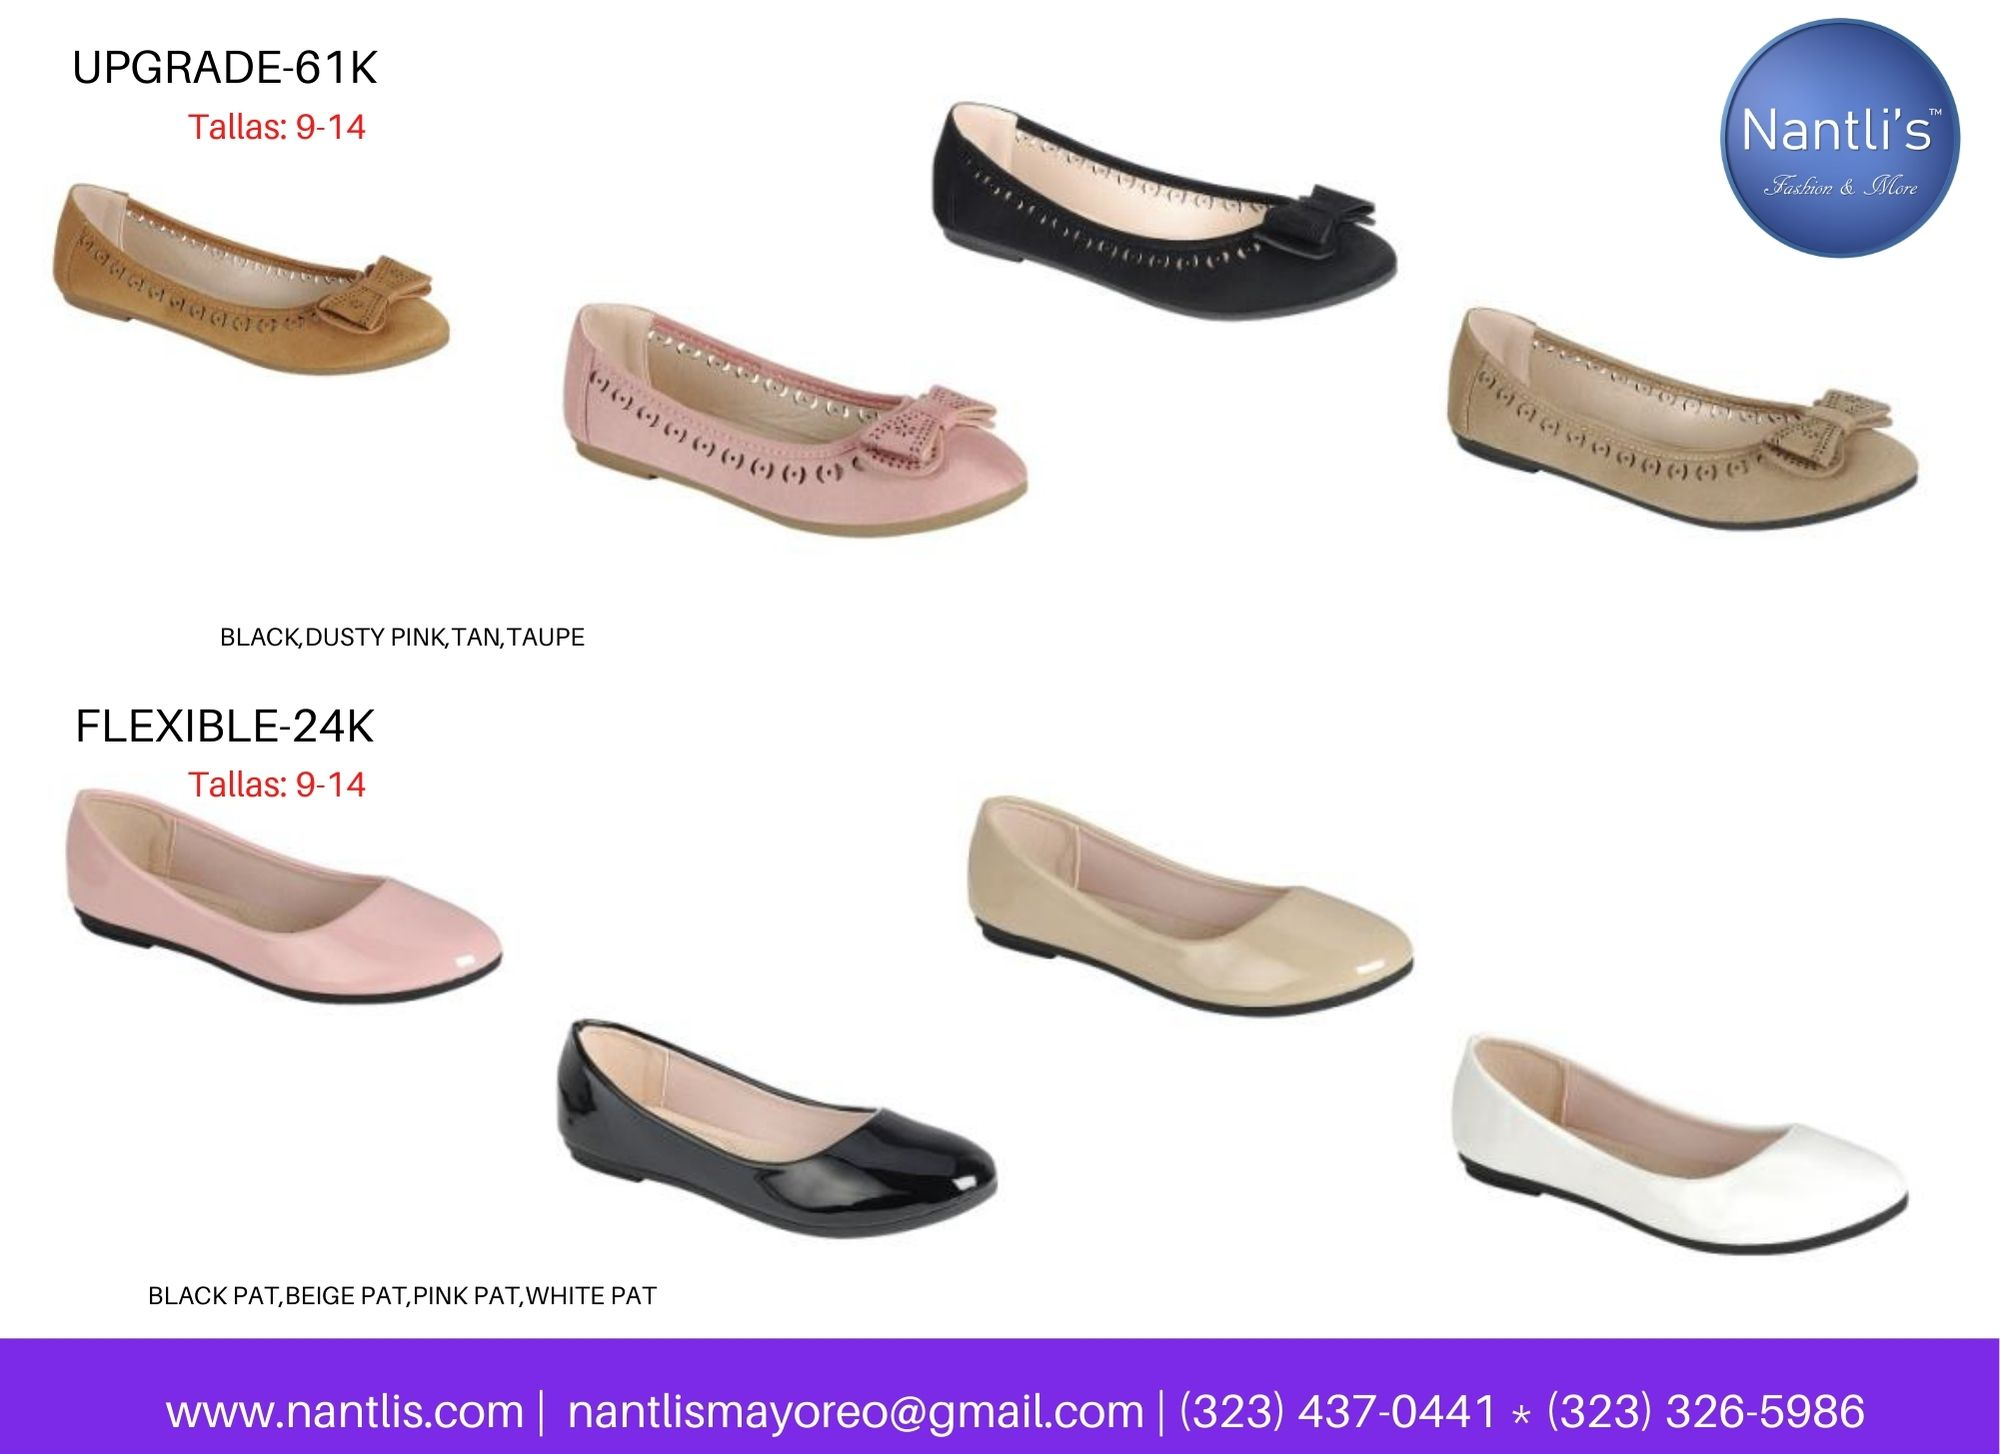 Catalogo Vol FL28 Tenis y Zapatos de ninas Mayoreo Wholesale girls shoes and tennis shoes for kids page 10